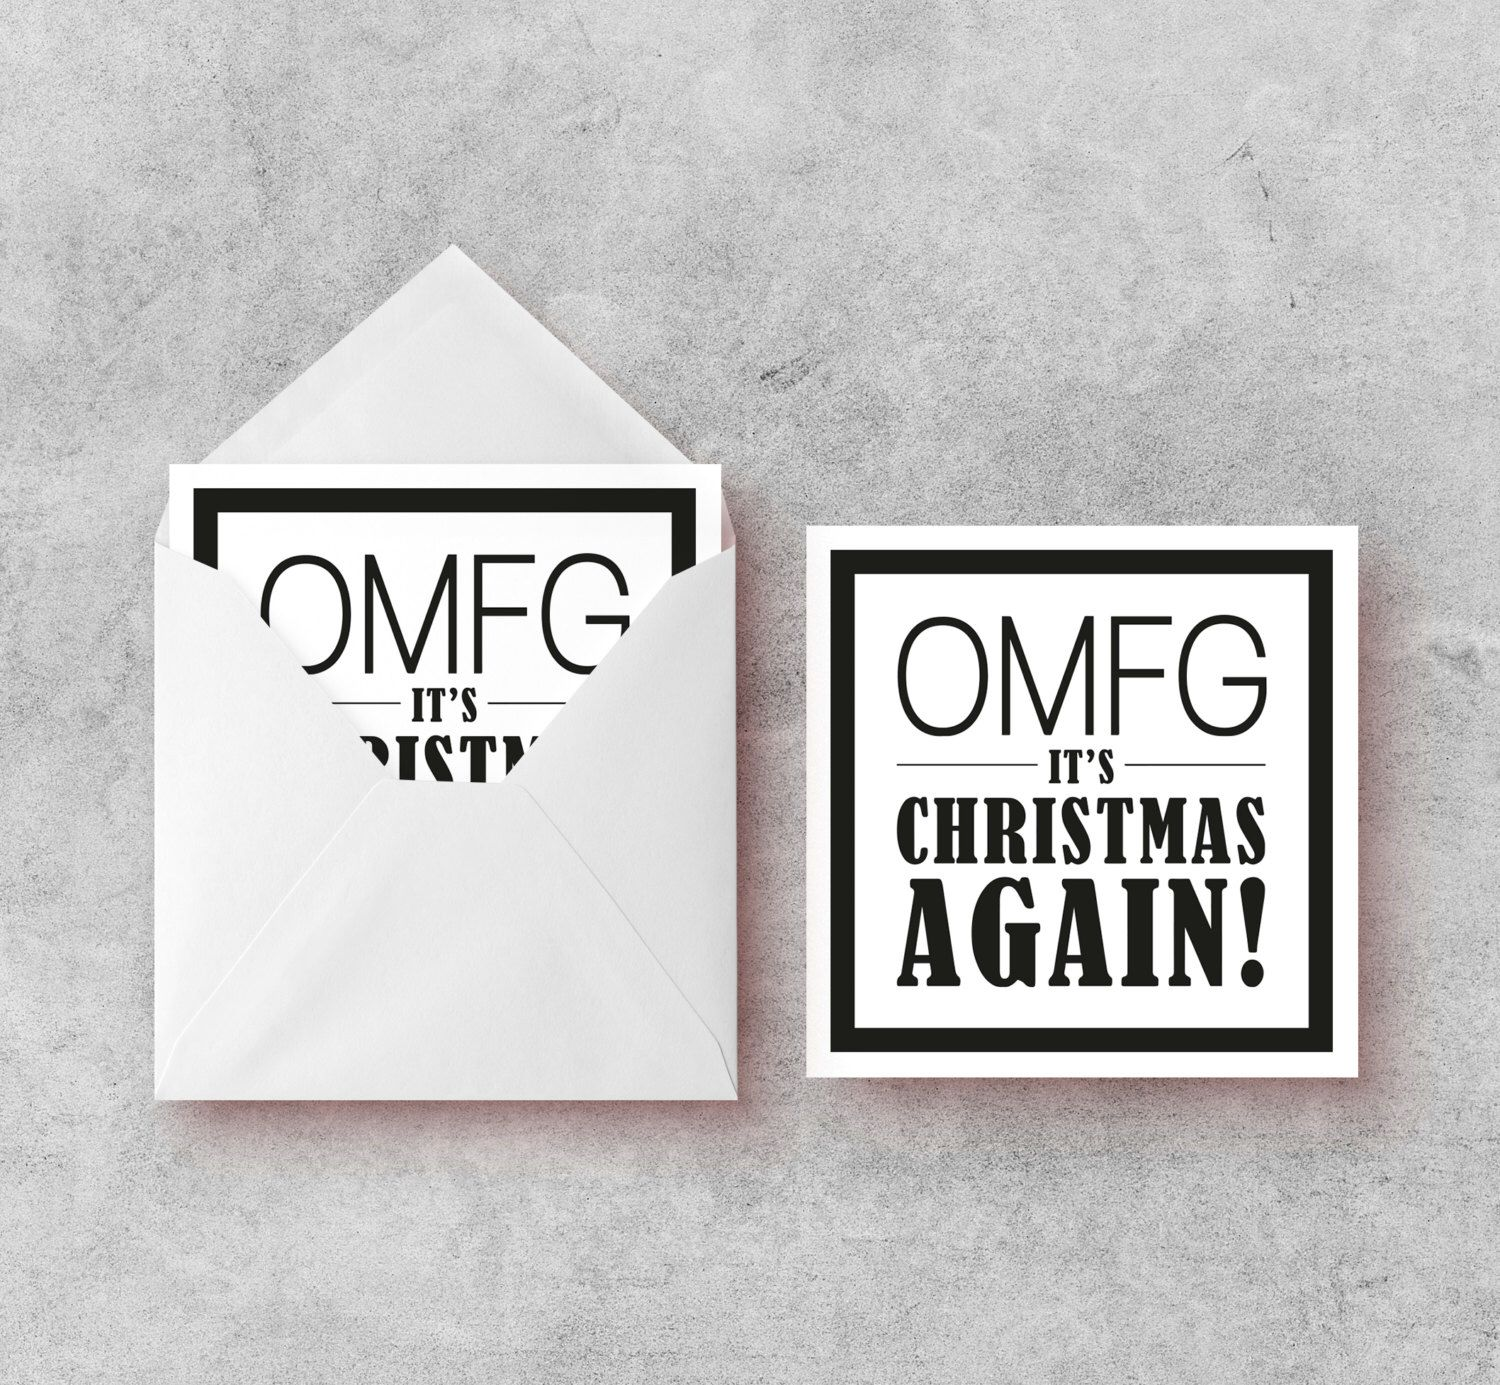 Christmas Card, OMFG It's Christmas!, Christmas Sayings, Funny Christmas Cards, Monochrome, Text Speak by ApricotPoodleDesign on Etsy https://www.etsy.com/uk/listing/494617183/christmas-card-omfg-its-christmas